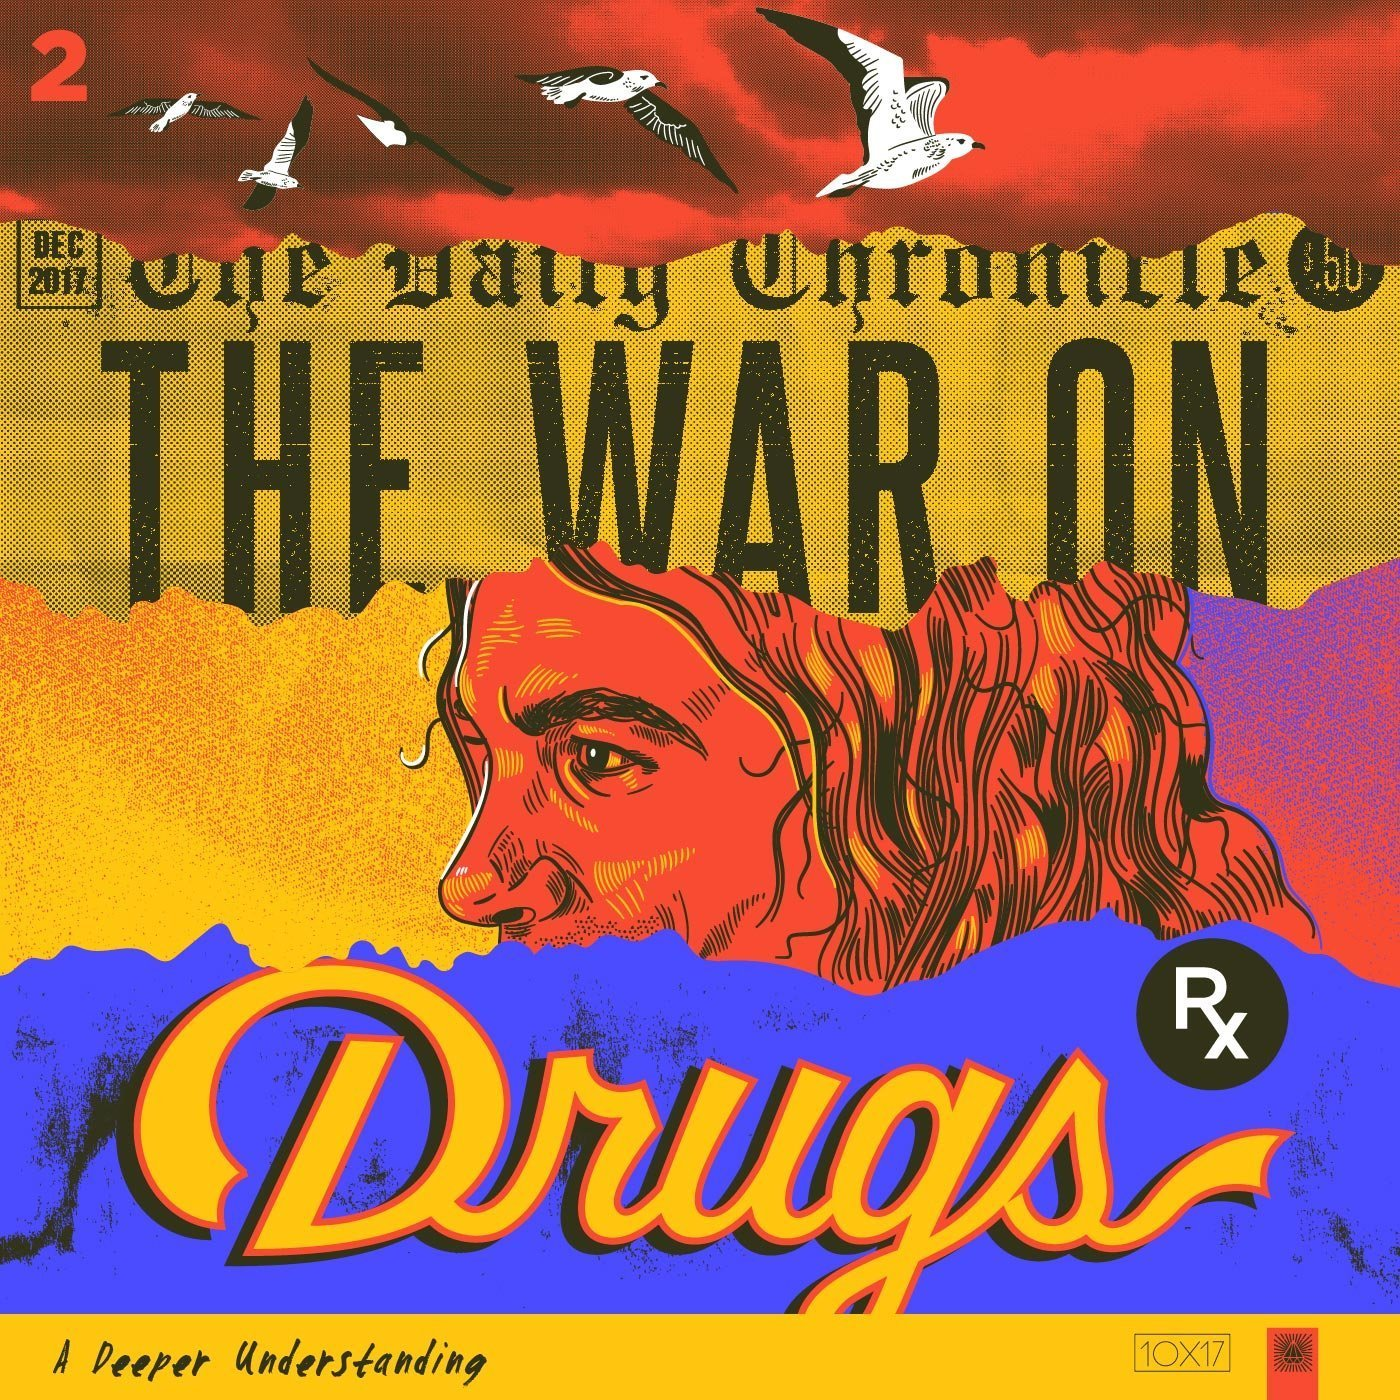 War on Drugs album cover reimagined by Amy Hood - Custom lettering and Adams face